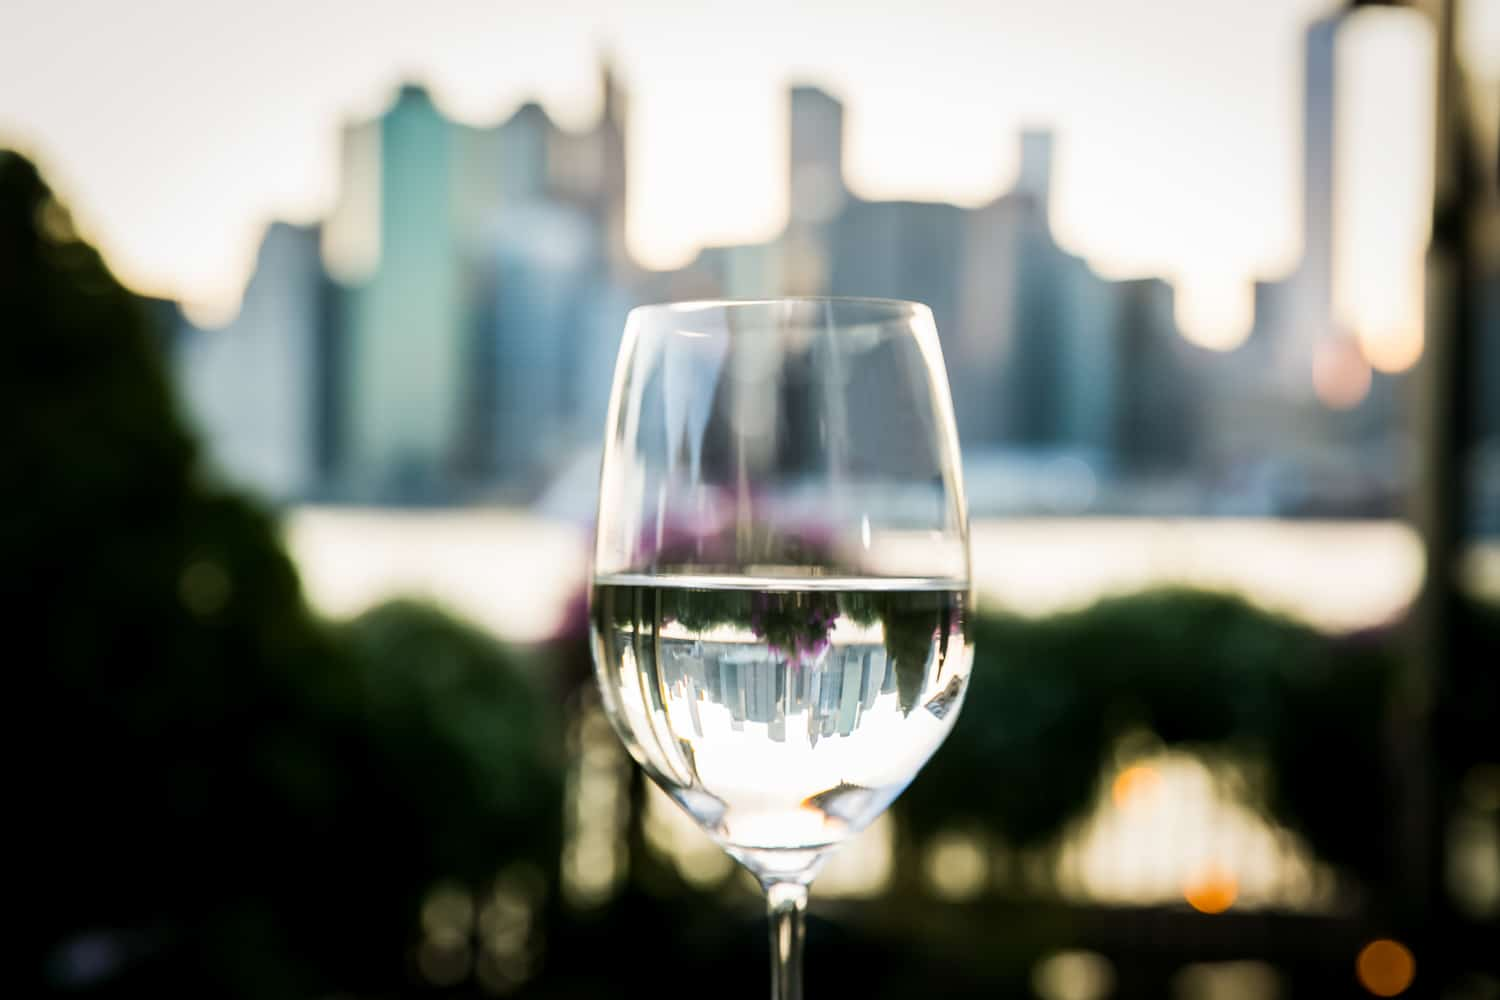 Wine glass filled with water with NYC skyline reflected